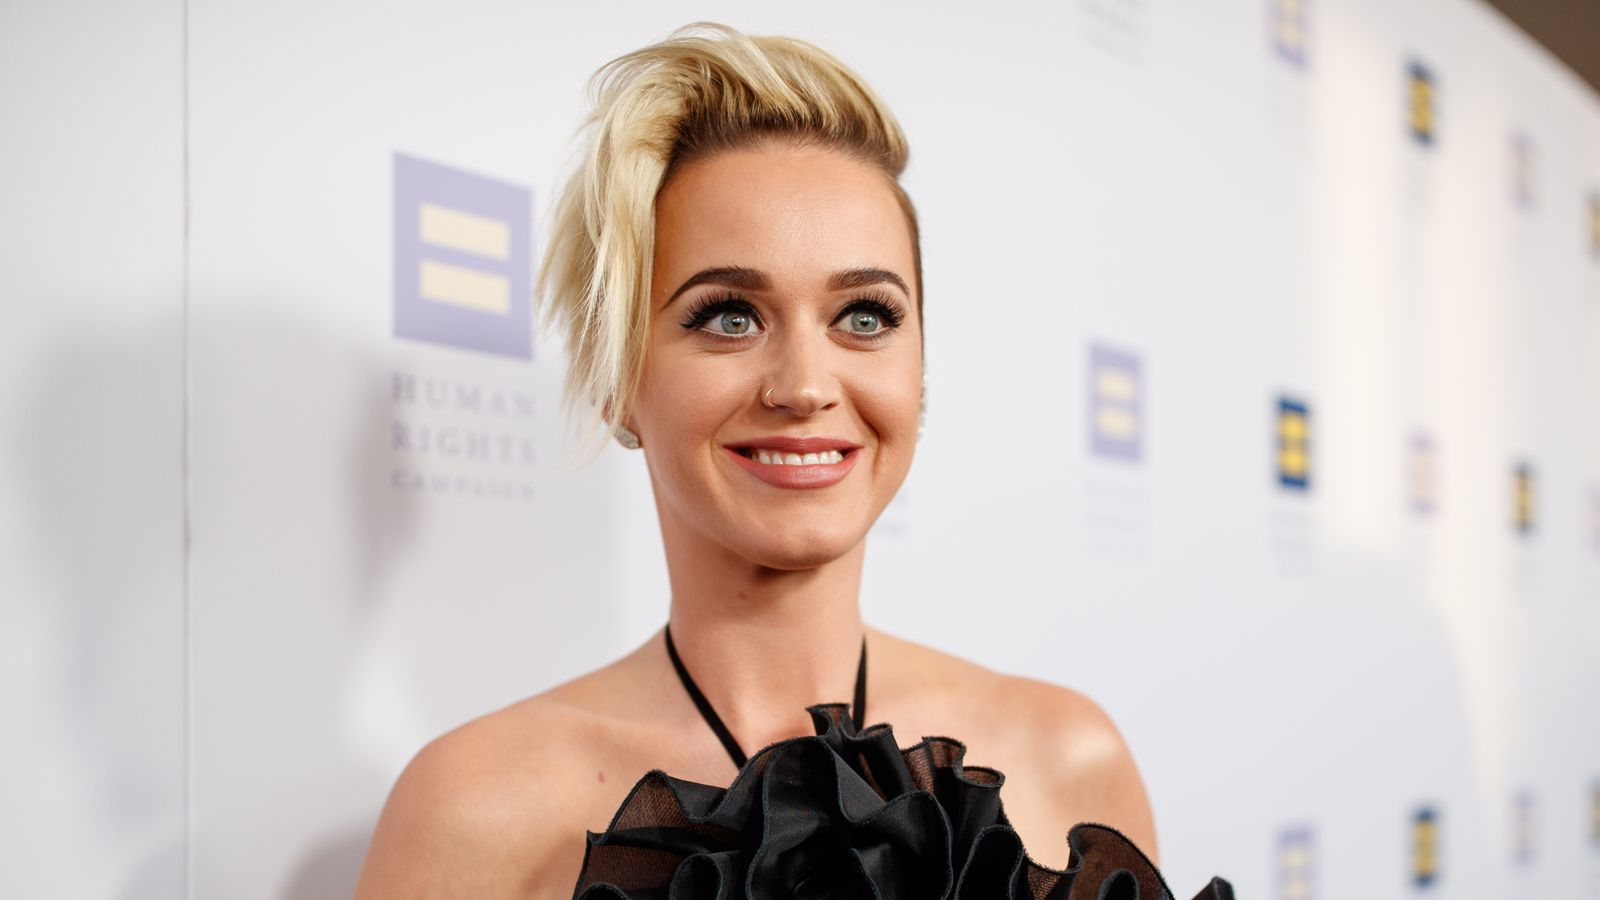 Singer Katy Perry arrives to The Human Rights Campaign 2017